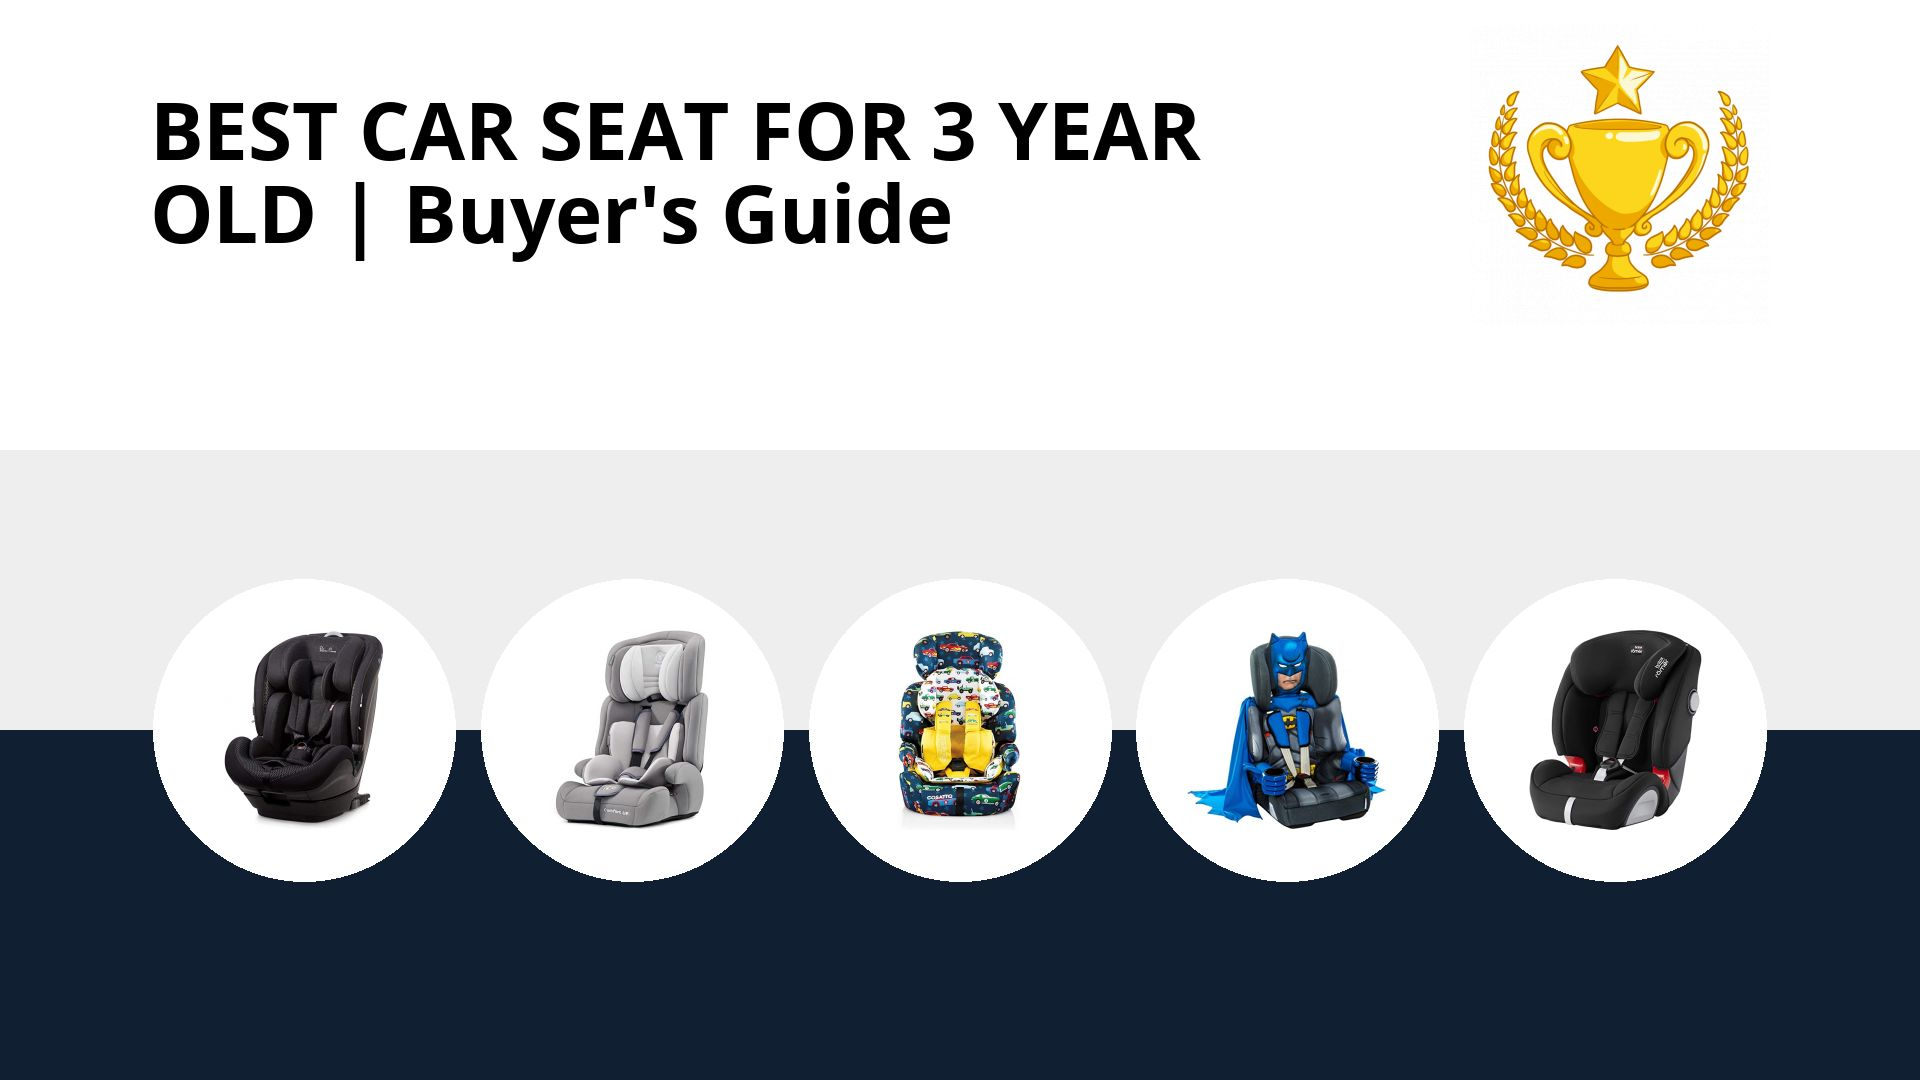 Best Car Seat For 3 Year Old: image